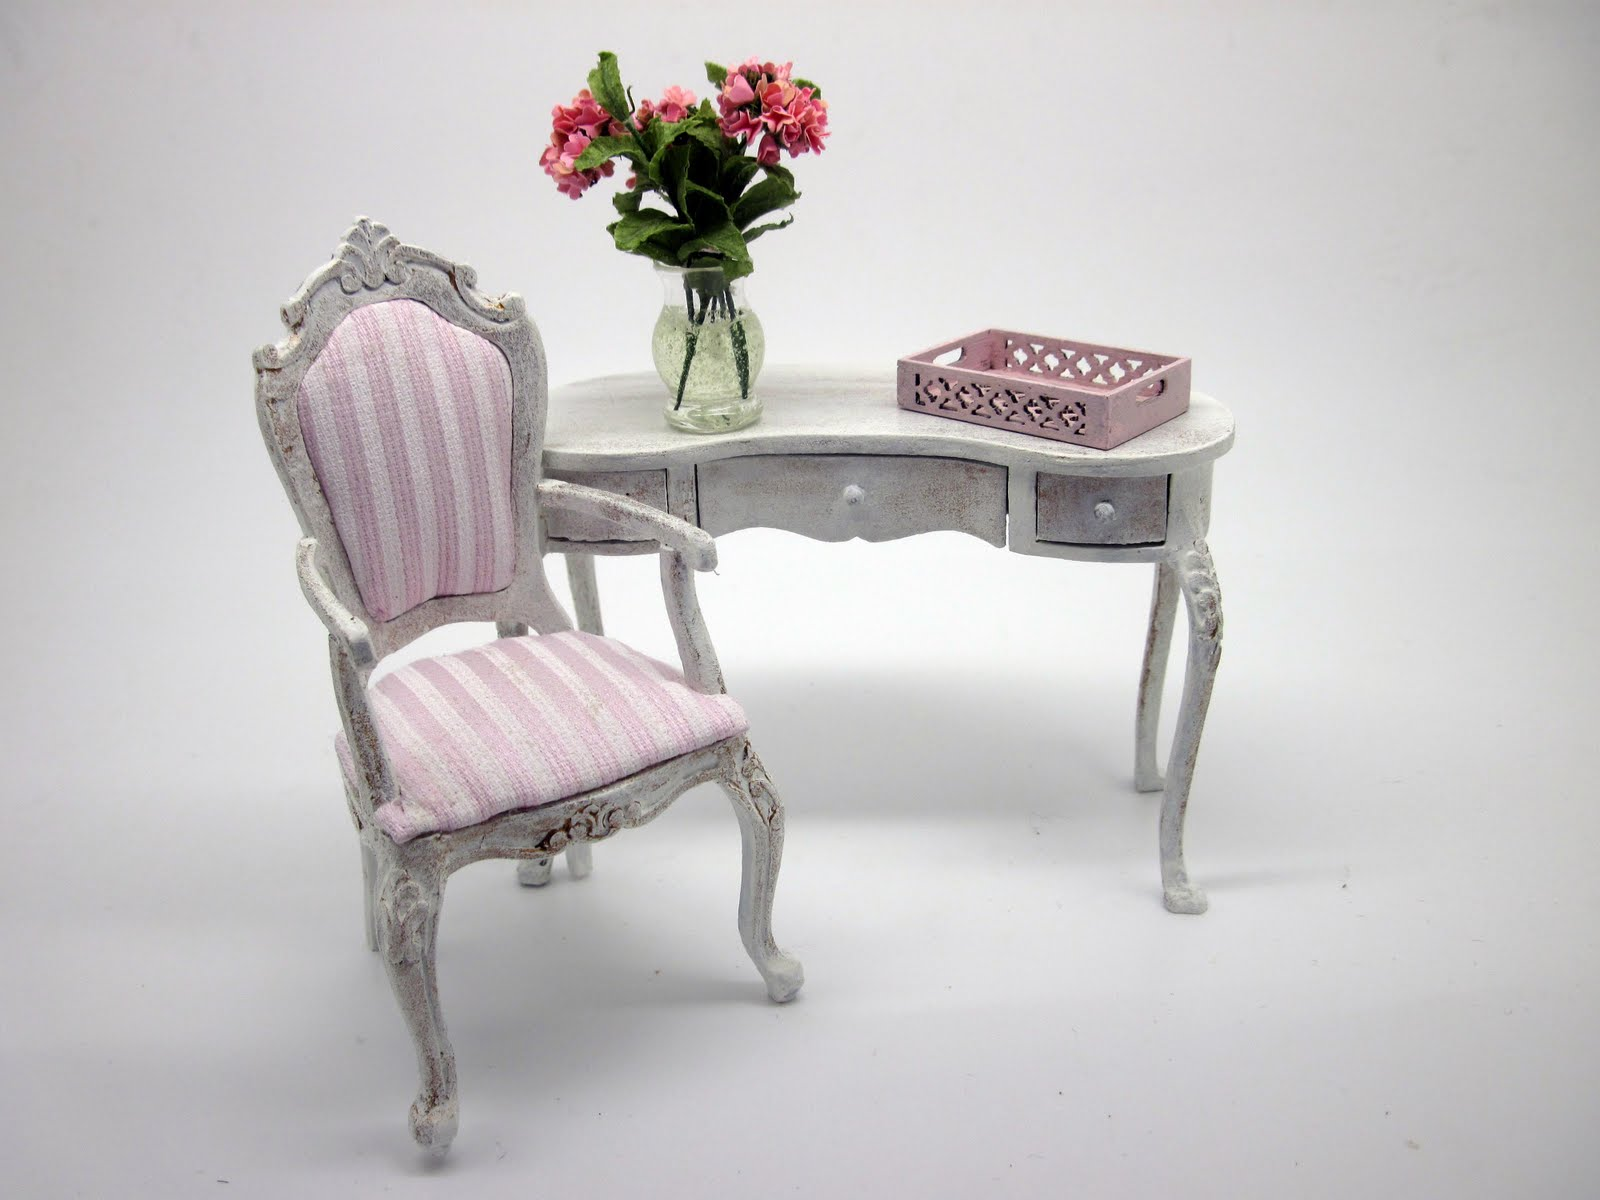 CDHM Artisan Vilia Alma Lia of Vilia Miniature 1:12 furniture in dollhouse miniature scale